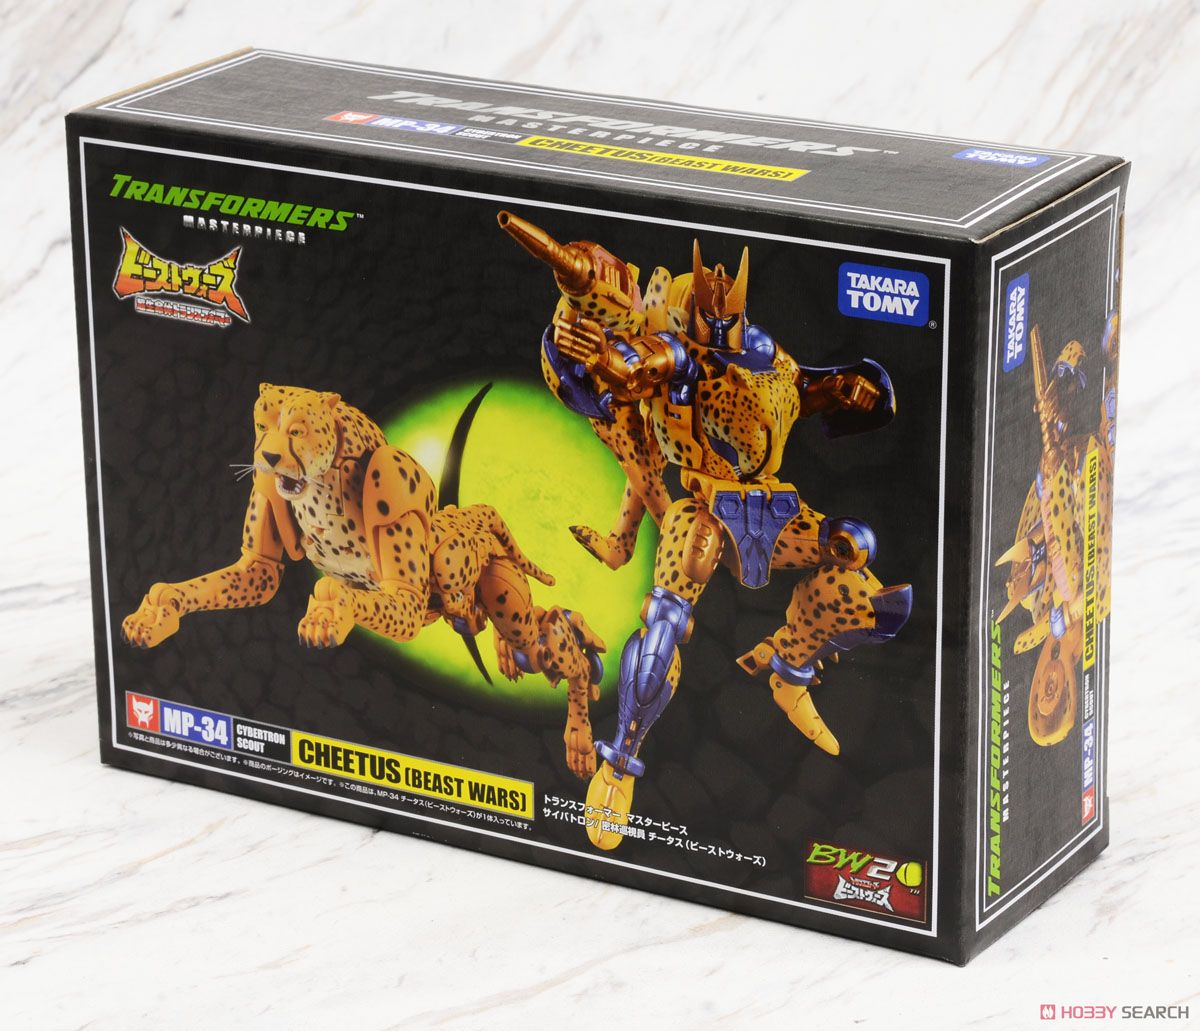 MP-34 Cheetahs (Beast Wars) (Completed) Package1